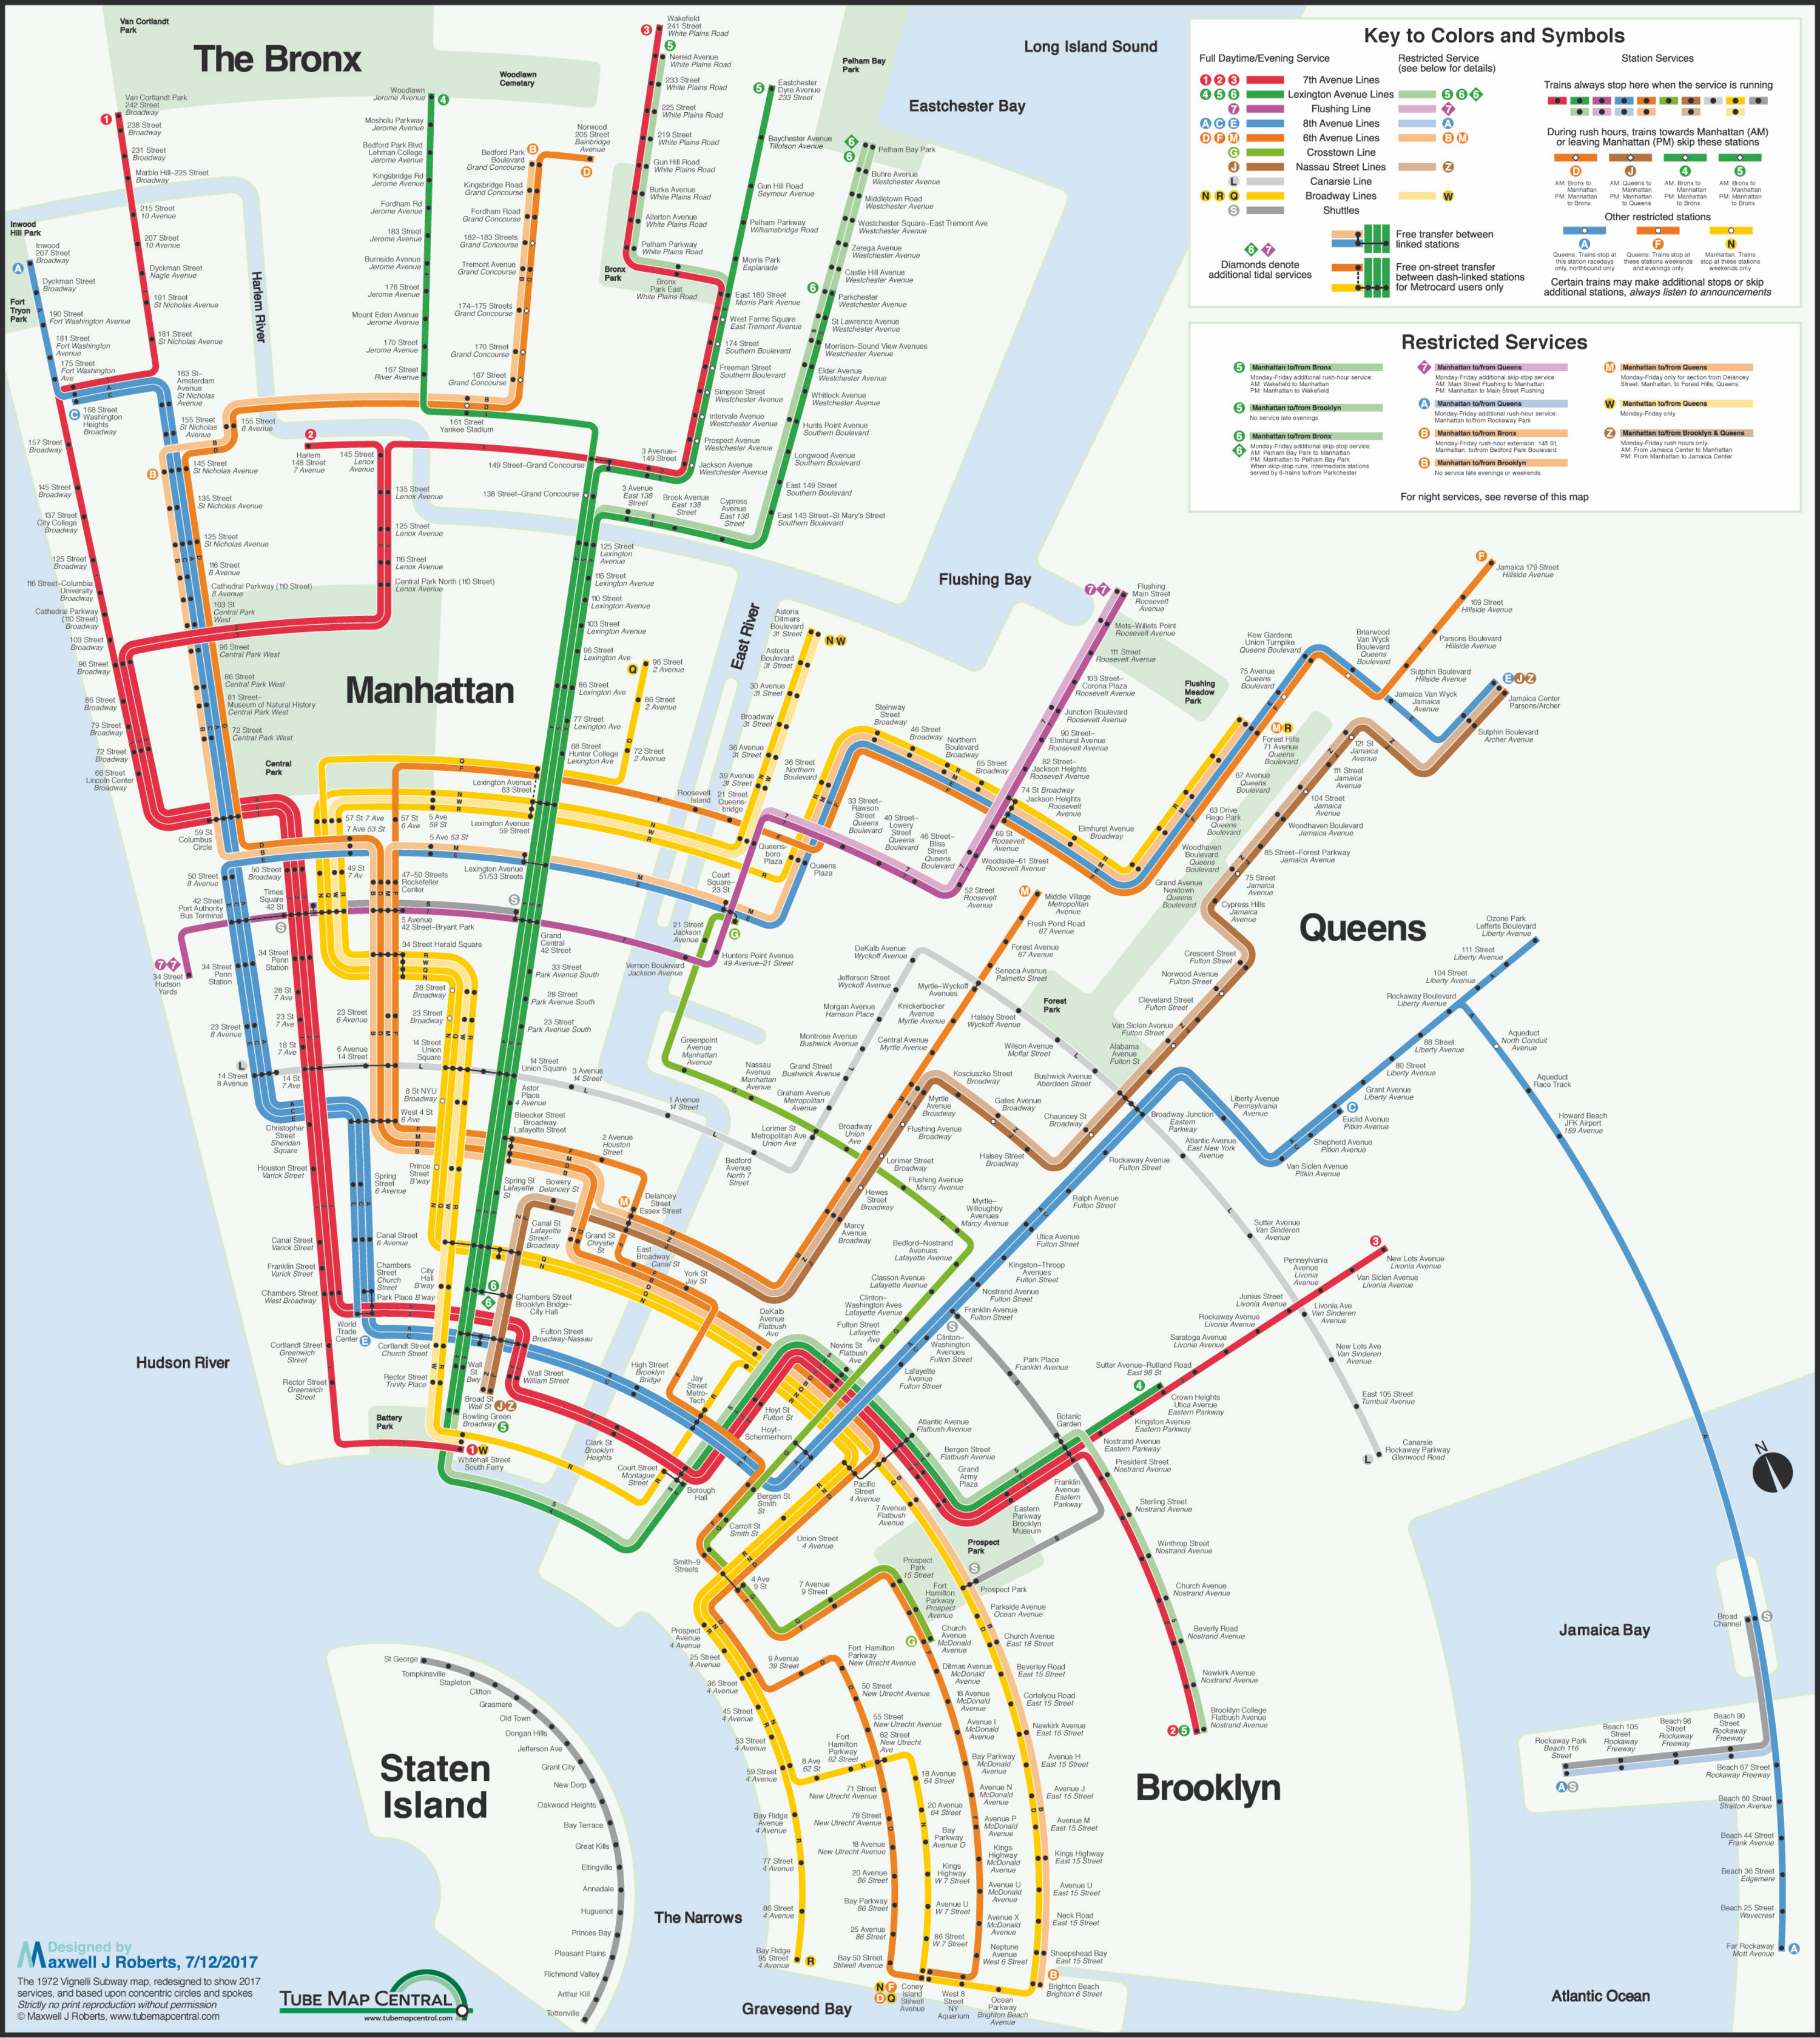 Broadway Subway Map.New York City Subway Concentric Circle Map In A Massimo Vignelli